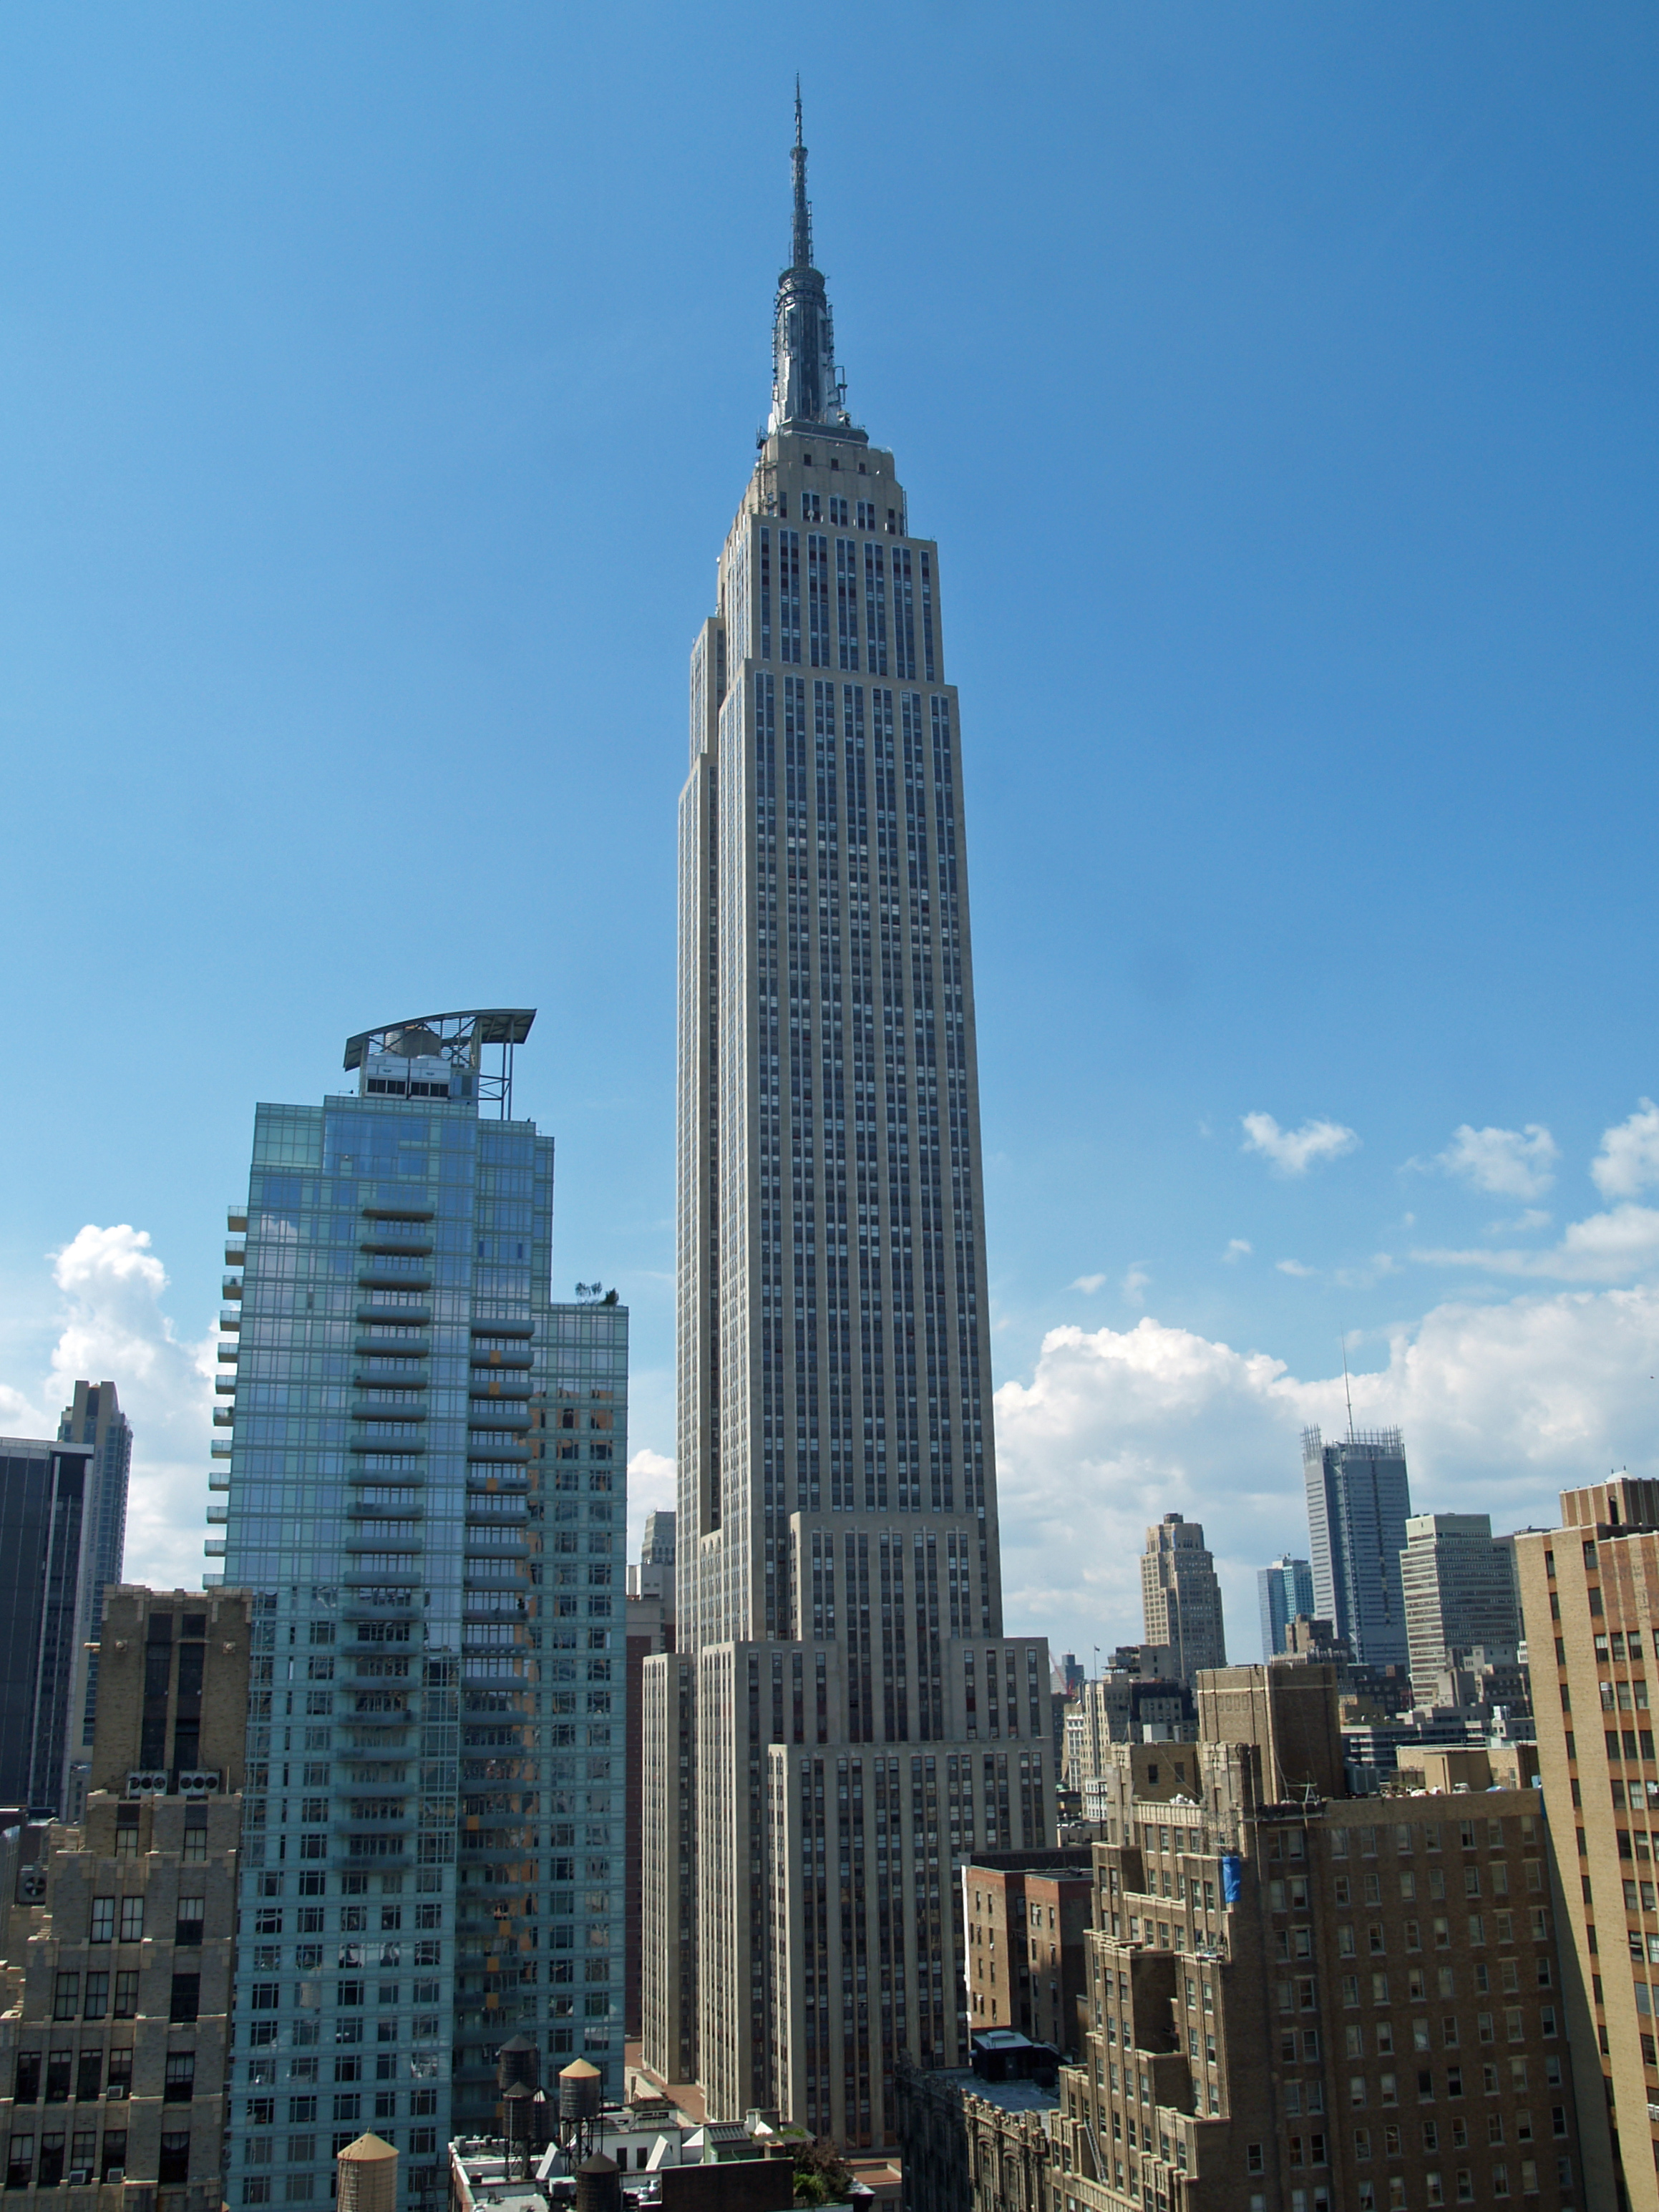 Depiction of Empire State Building